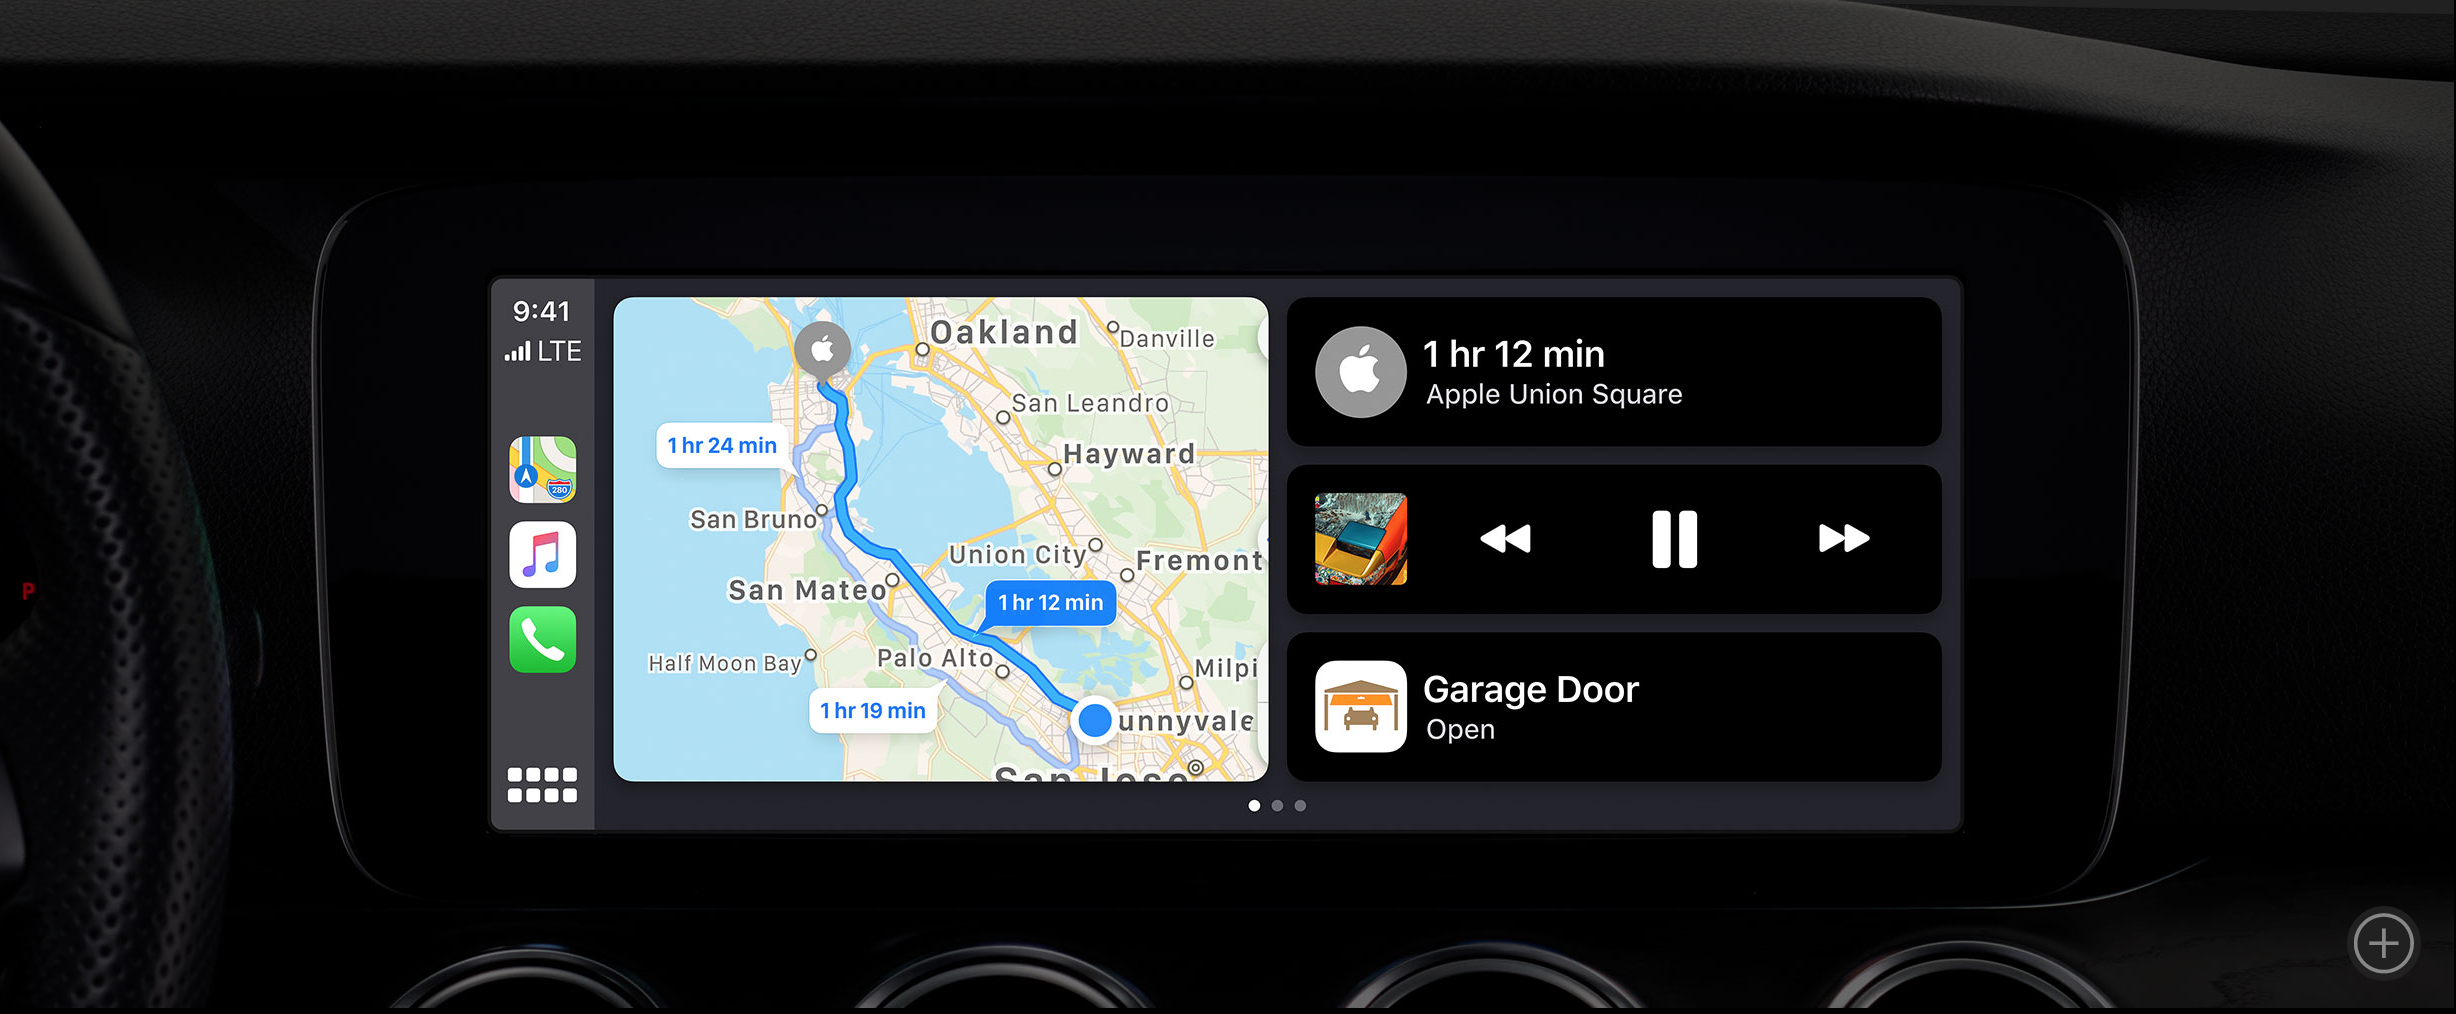 Apple CarPlay IOS 13 Hands-On Videos Are Here | Top Speed